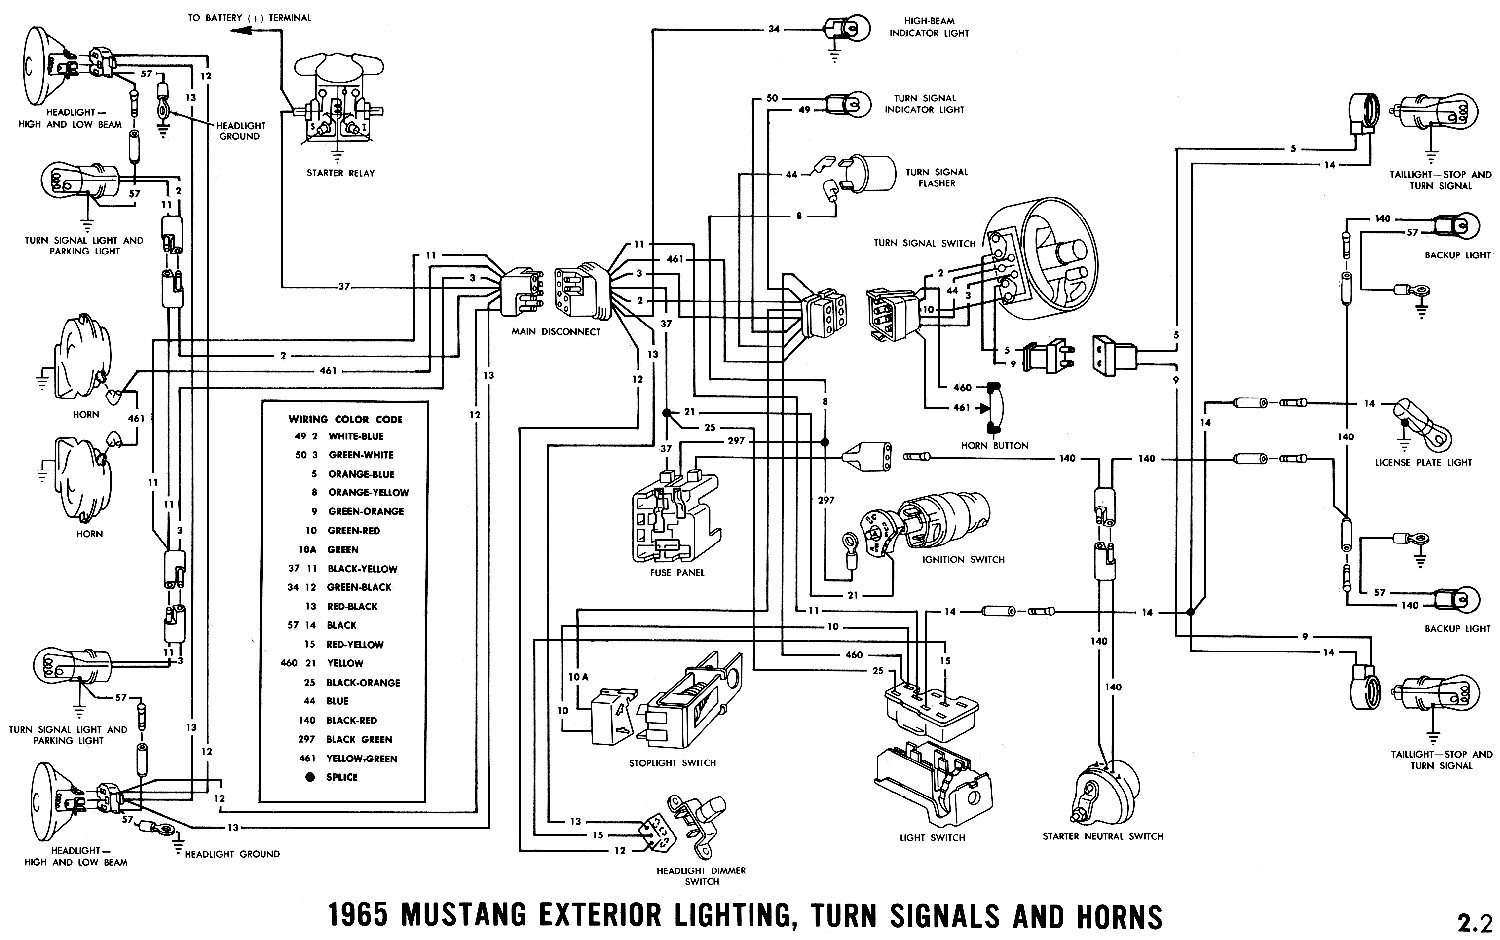 92 Mustang Turn Signal Wiring Diagram List Of Schematic Circuit 1969 Chevy Truck Dash Simple Rh David Huggett Co Uk